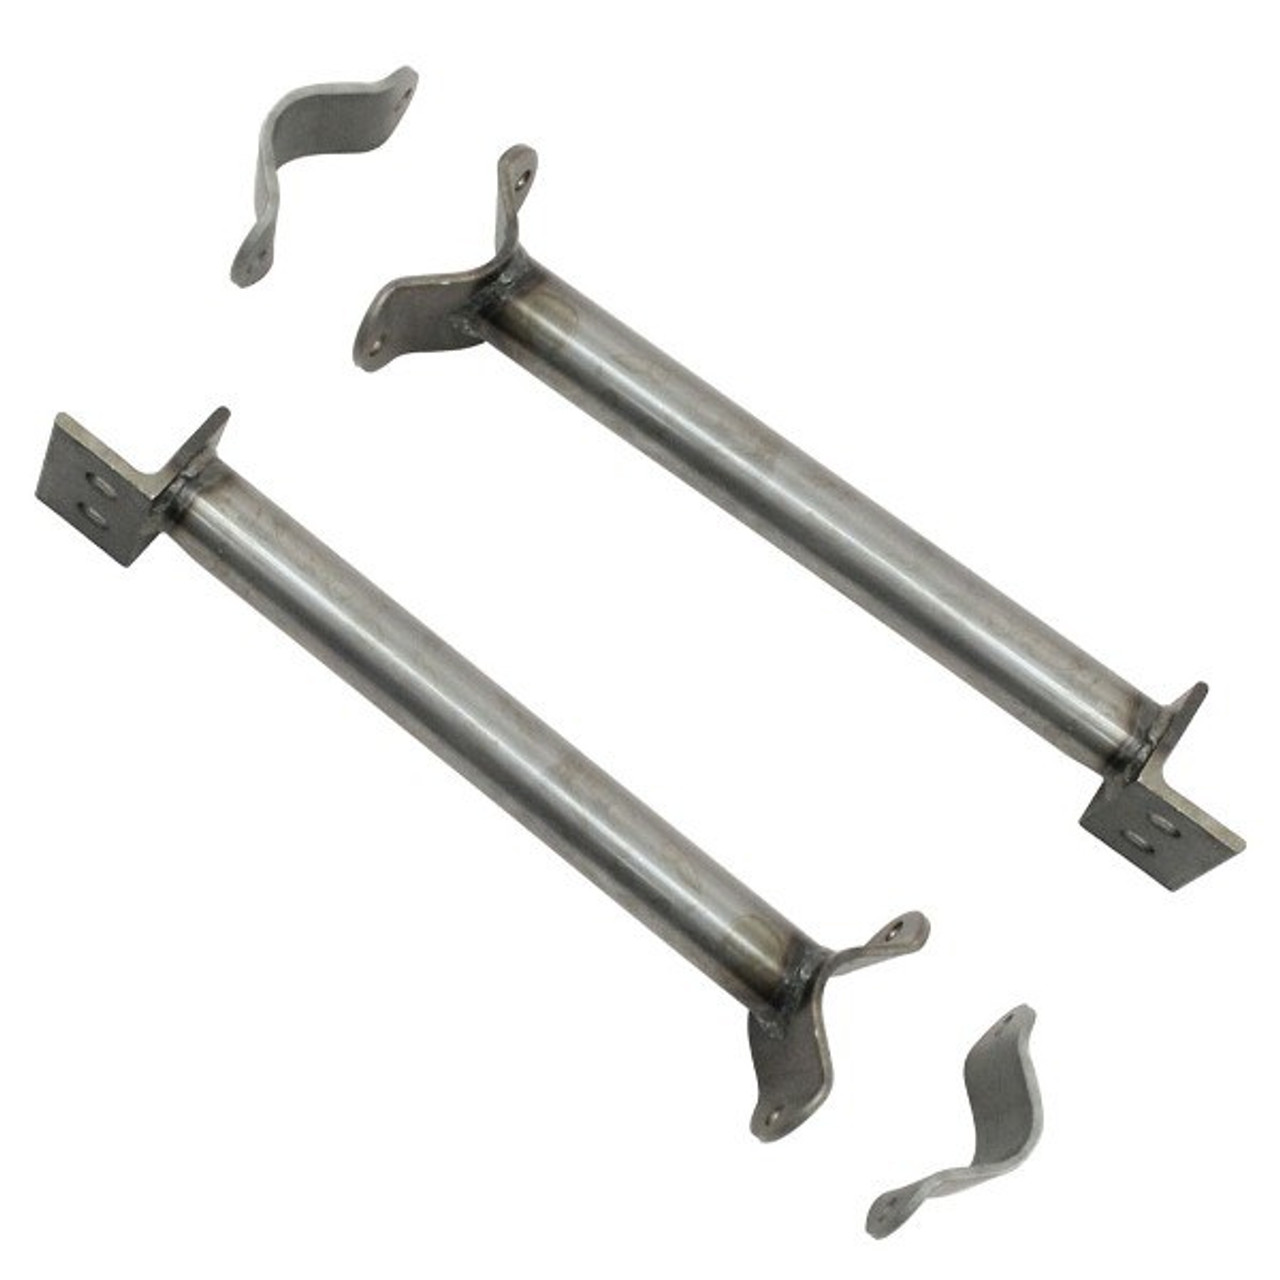 Empi 3842 Front Lower Axle Beam Support Tubes For Vw Baja Bug, Pair